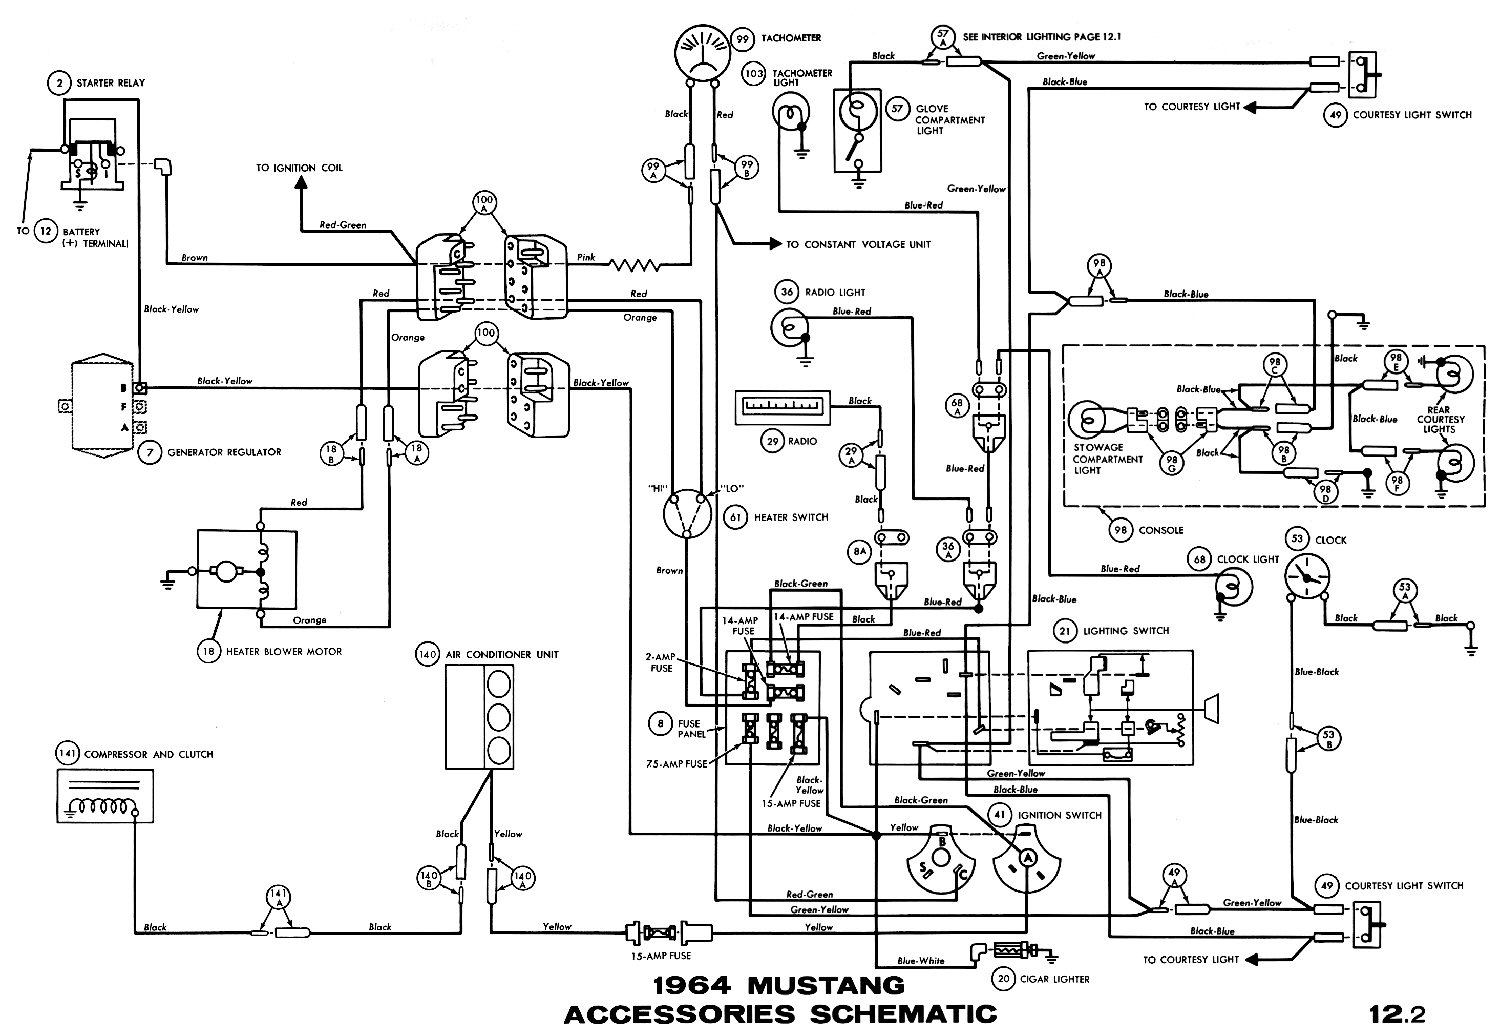 1964 Mustang Wiring Diagrams Average Joe Restoration X Large Gm Ignition Switch Diagram View Air Conditioner